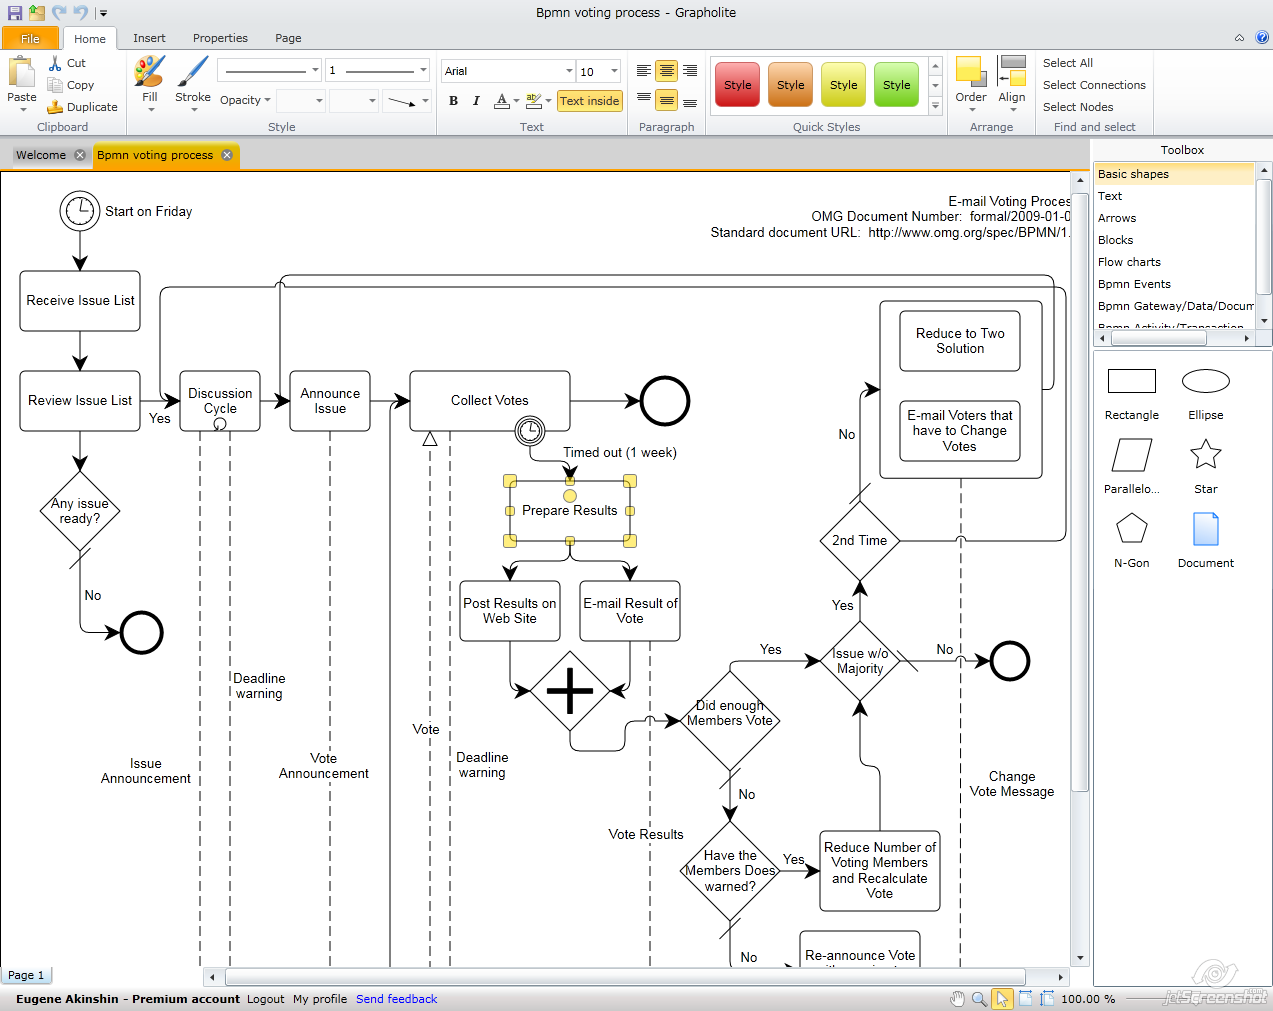 grapholite online diagramming solution now supports bpmn standard